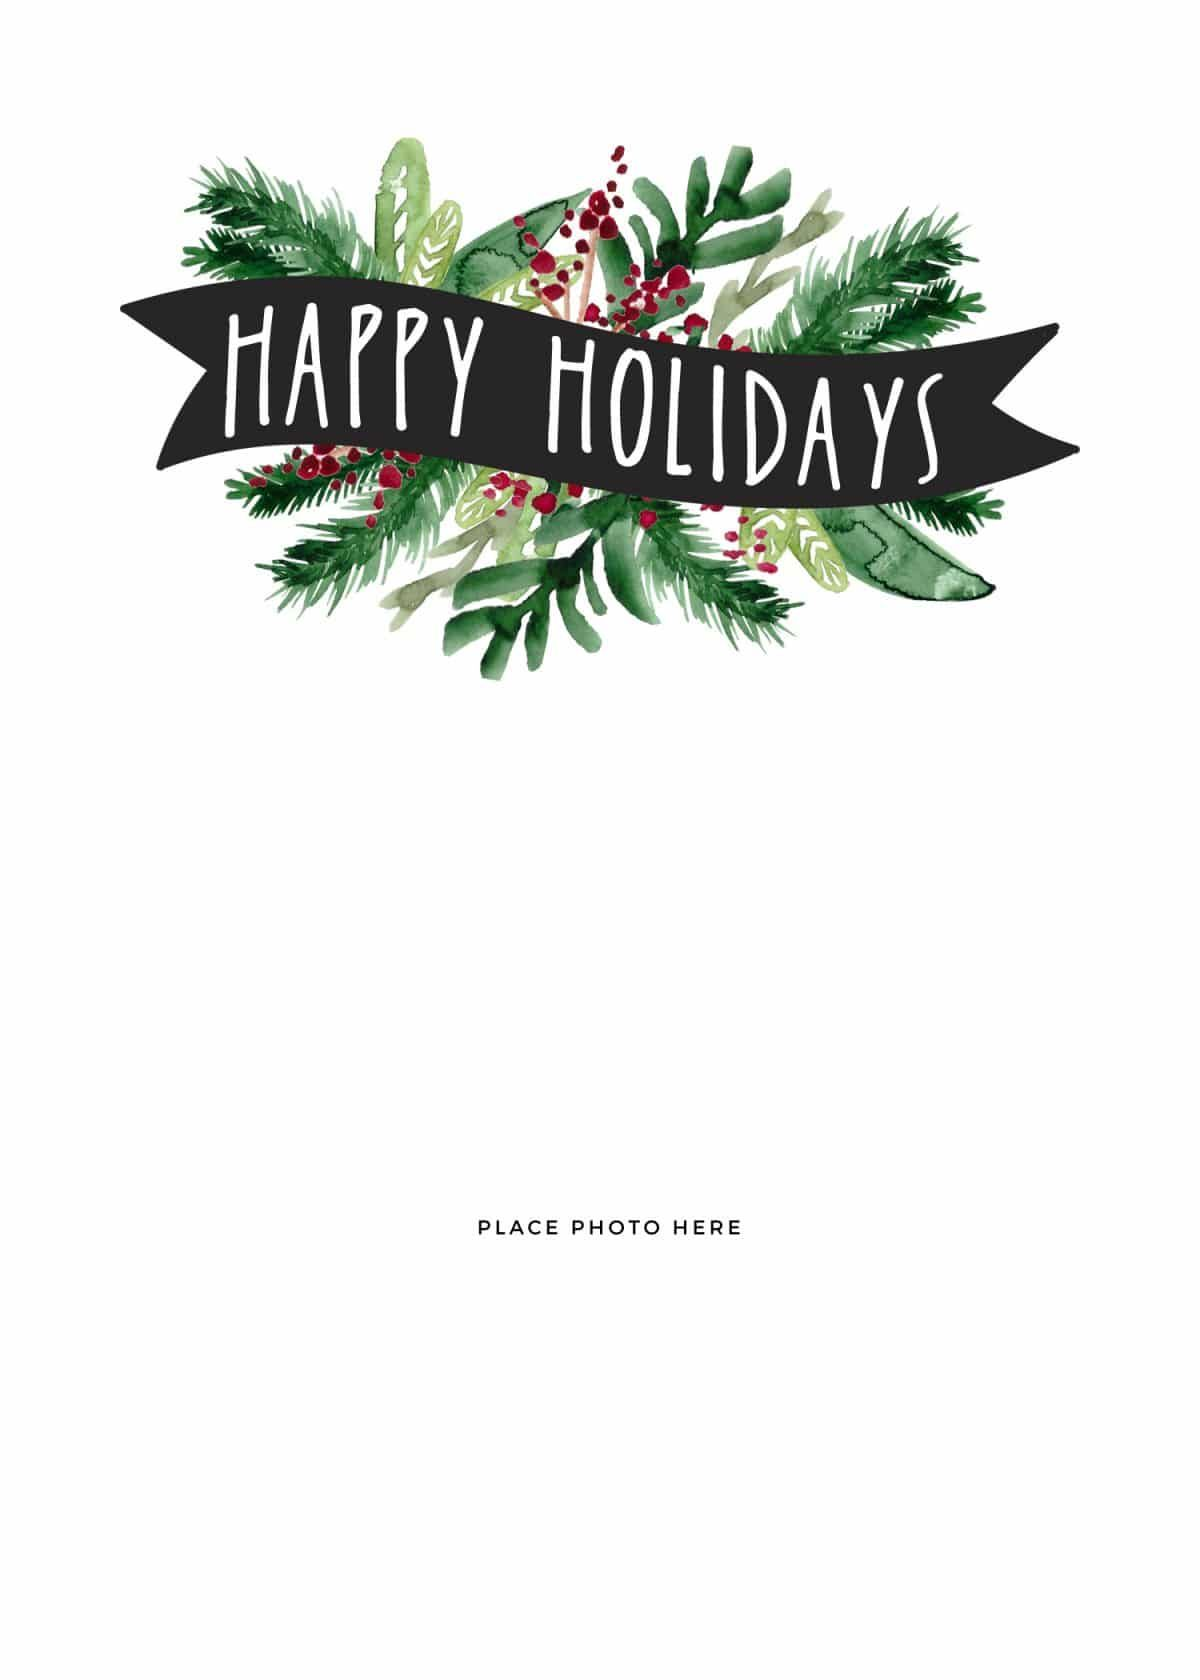 Save Time And Money By Making Your Own Photo Christmas Cards Here Free Holiday Photo Card Templates Christmas Card Templates Free Free Holiday Card Templates